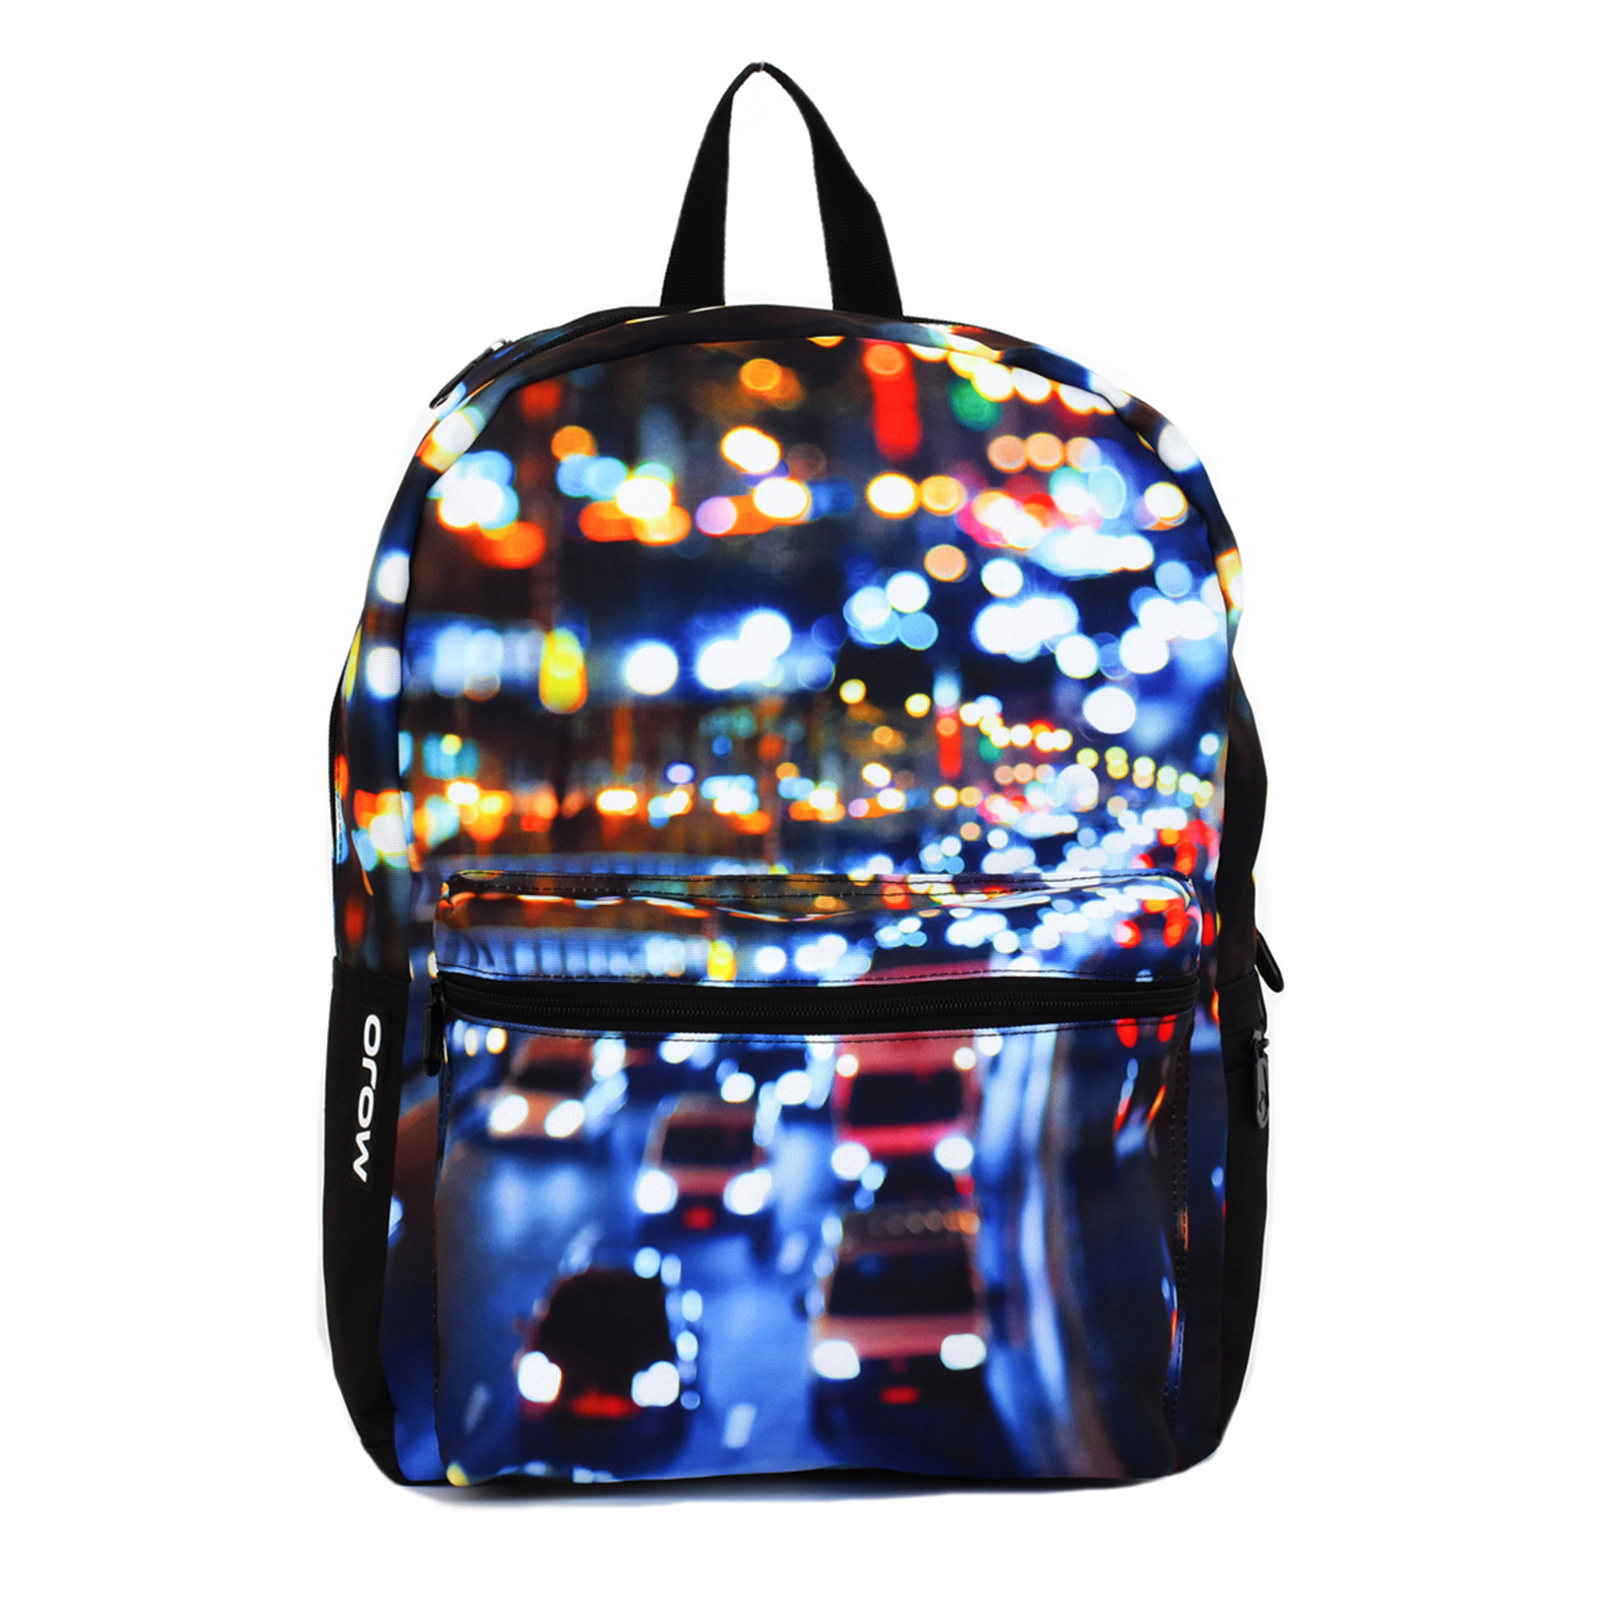 Mojo City Streets Hi-Def Print Water Resistant Backpack Bag (Black) at Sears.com